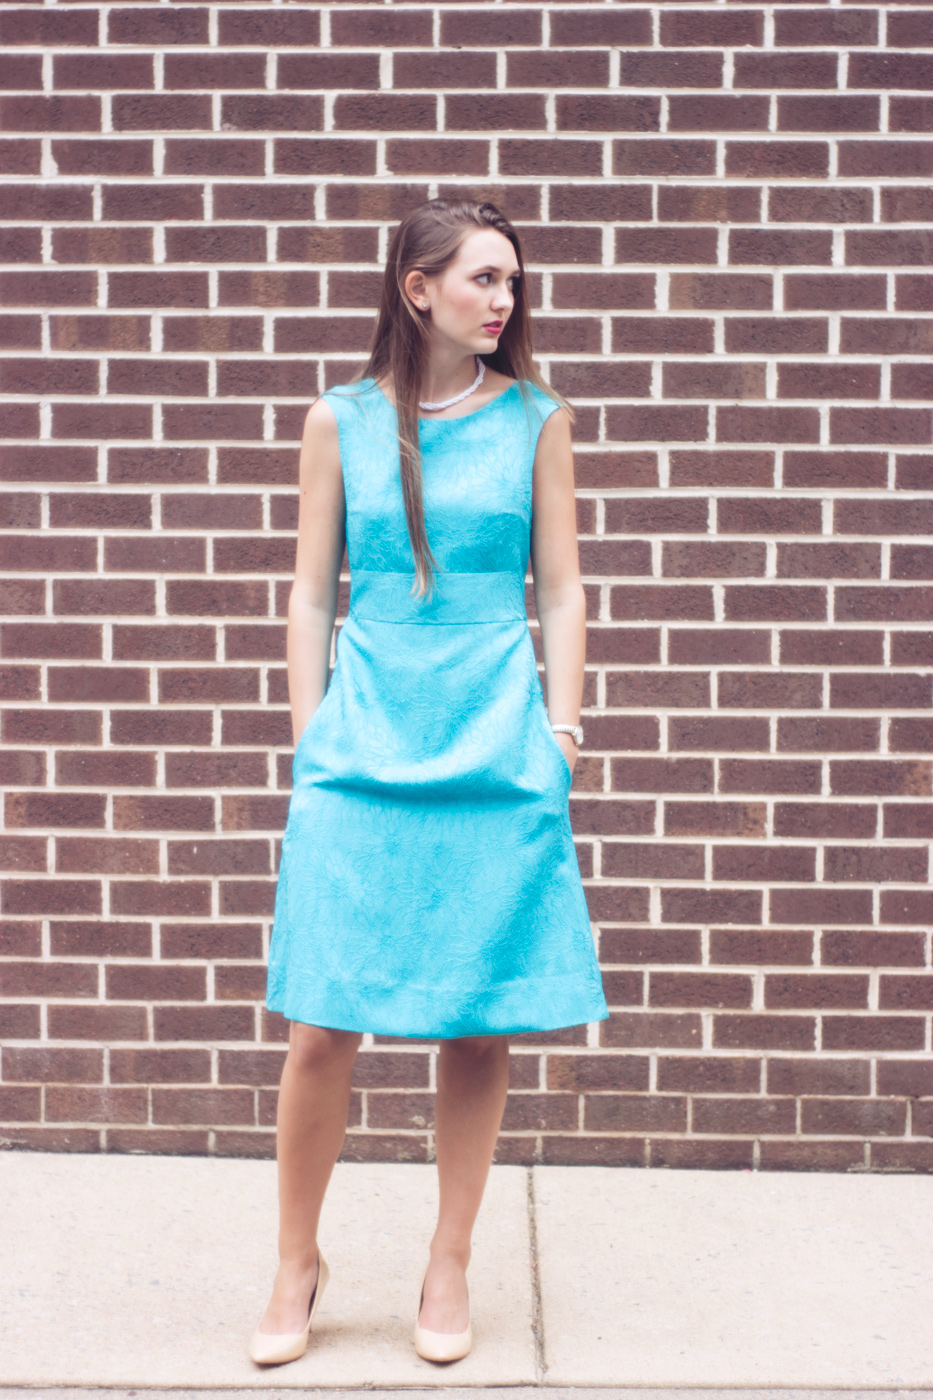 gegi-couture-madison-blue-pockets-dress